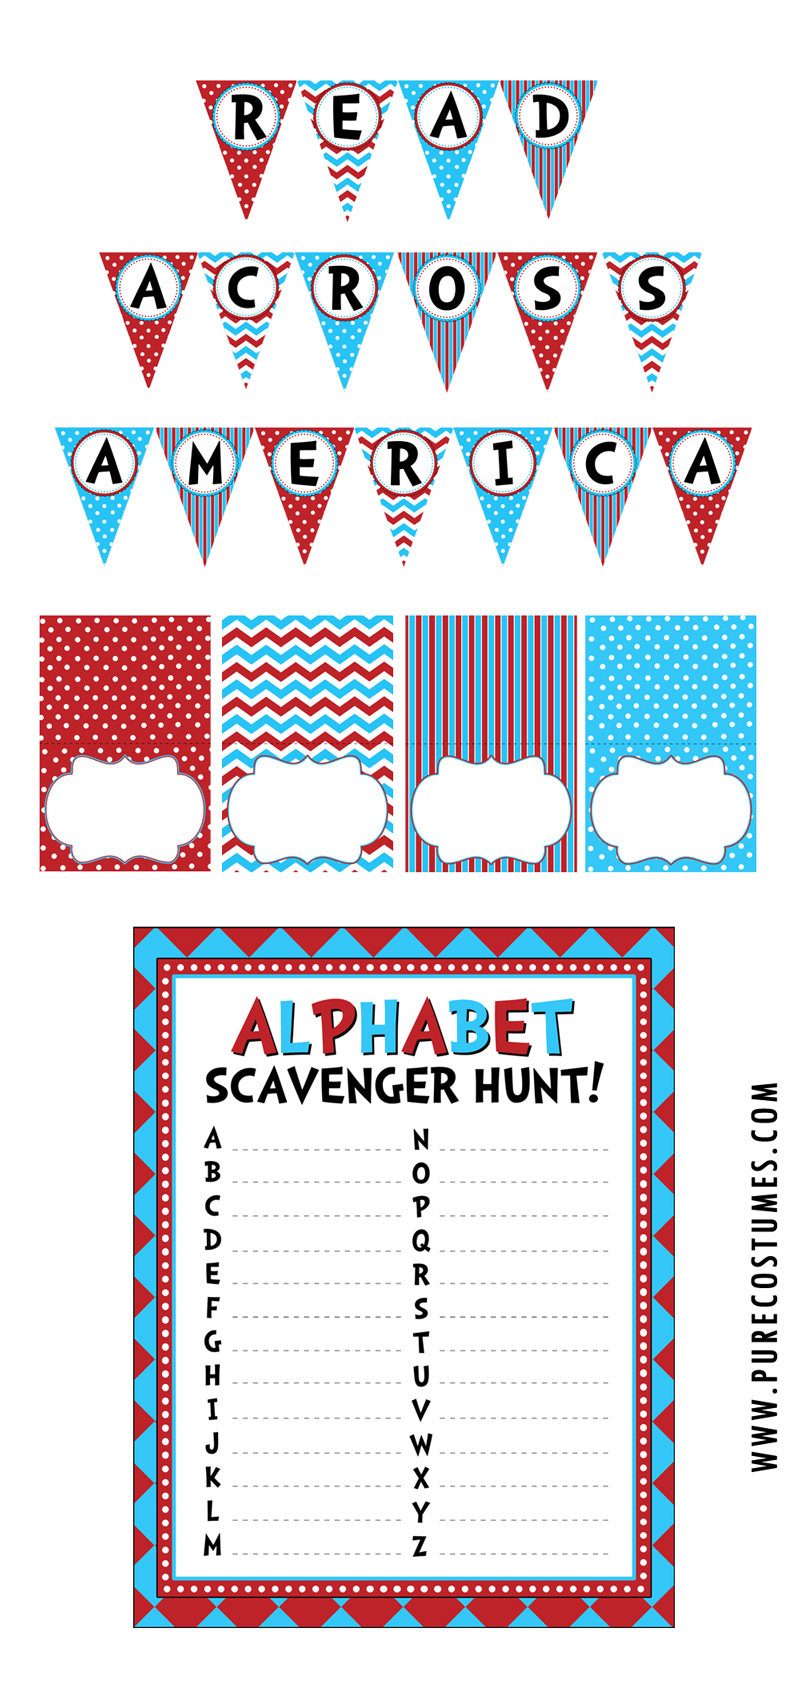 Free Read Across America Day Printables